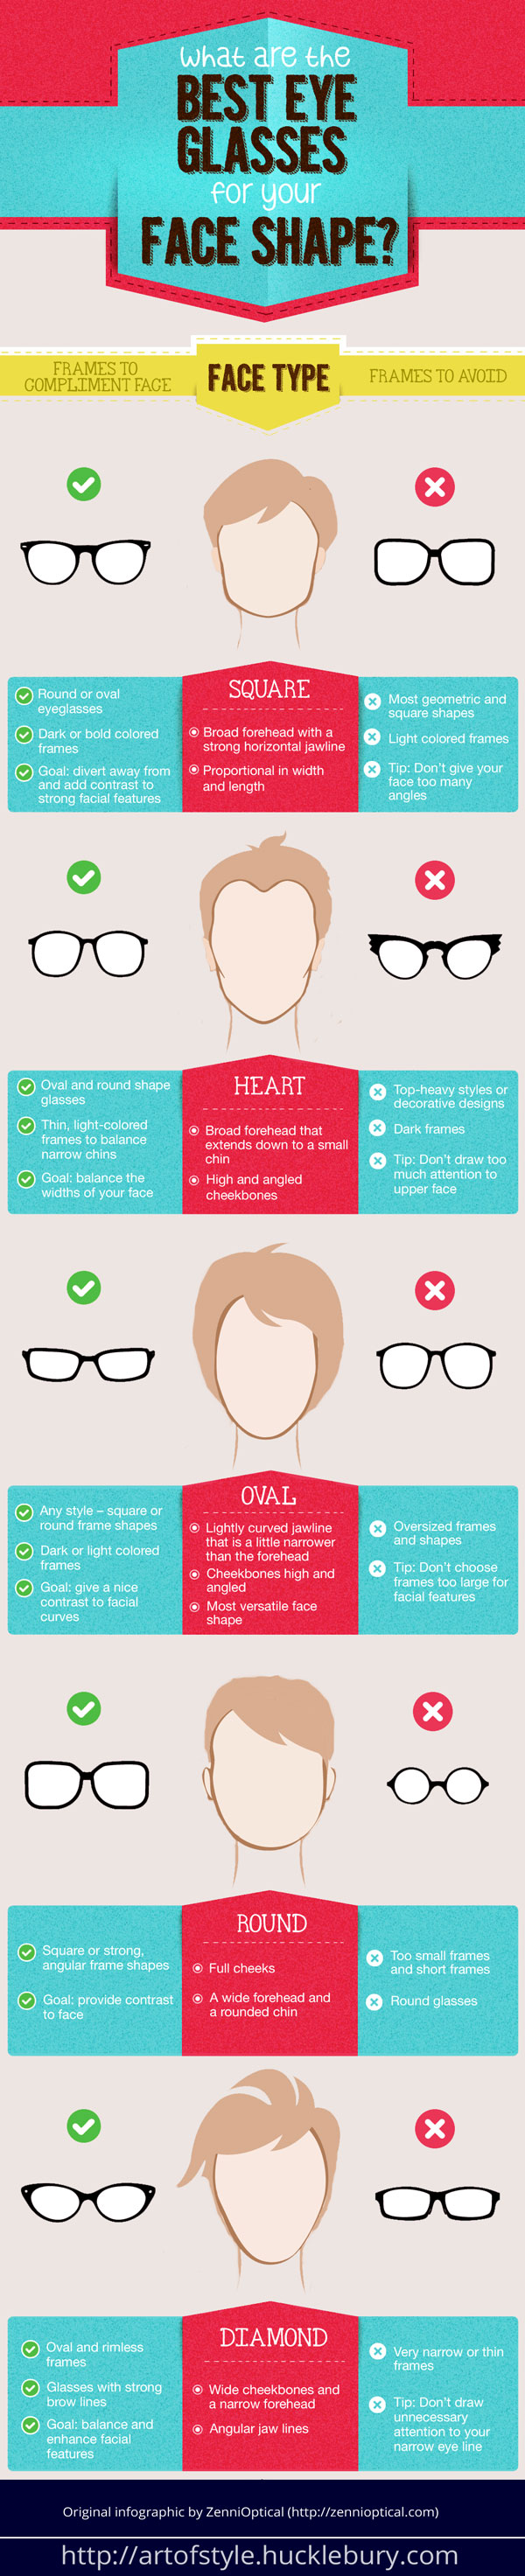 Choosing the Best Spectacle Frames - Infographic